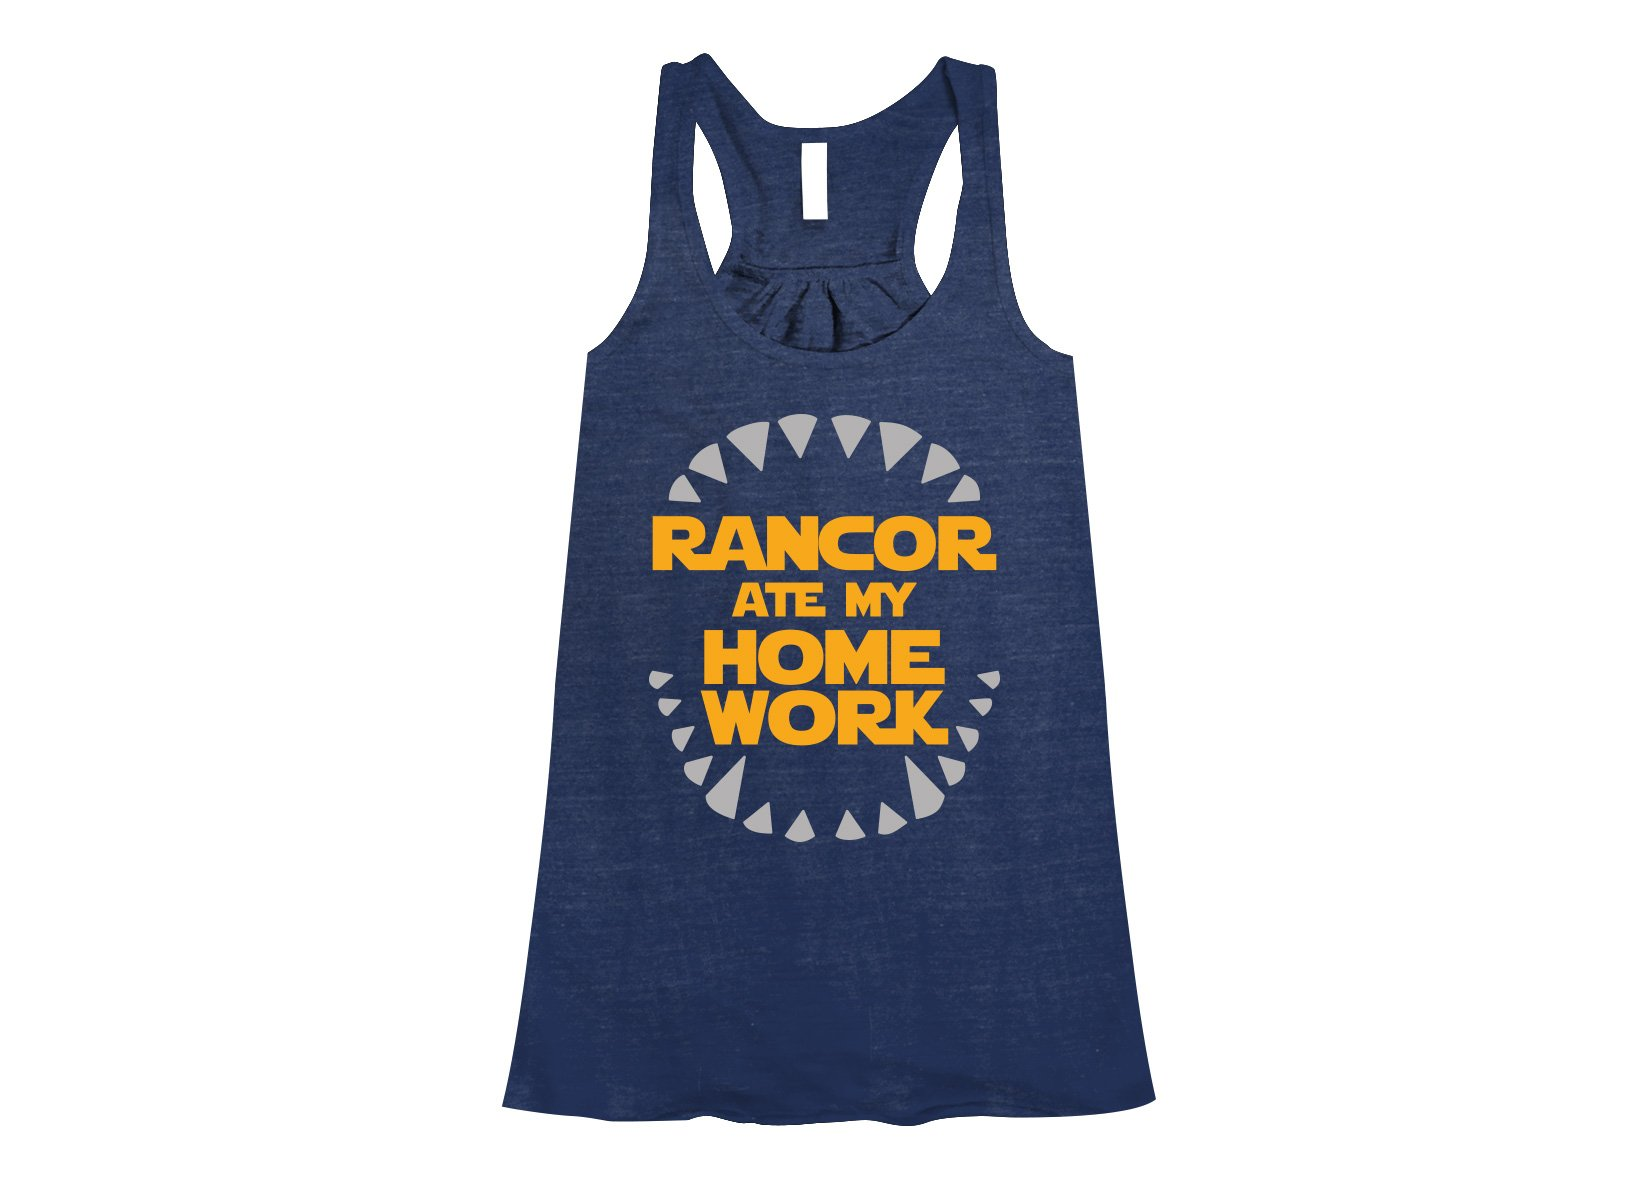 Rancor Ate My Homework on Womens Tanks T-Shirt